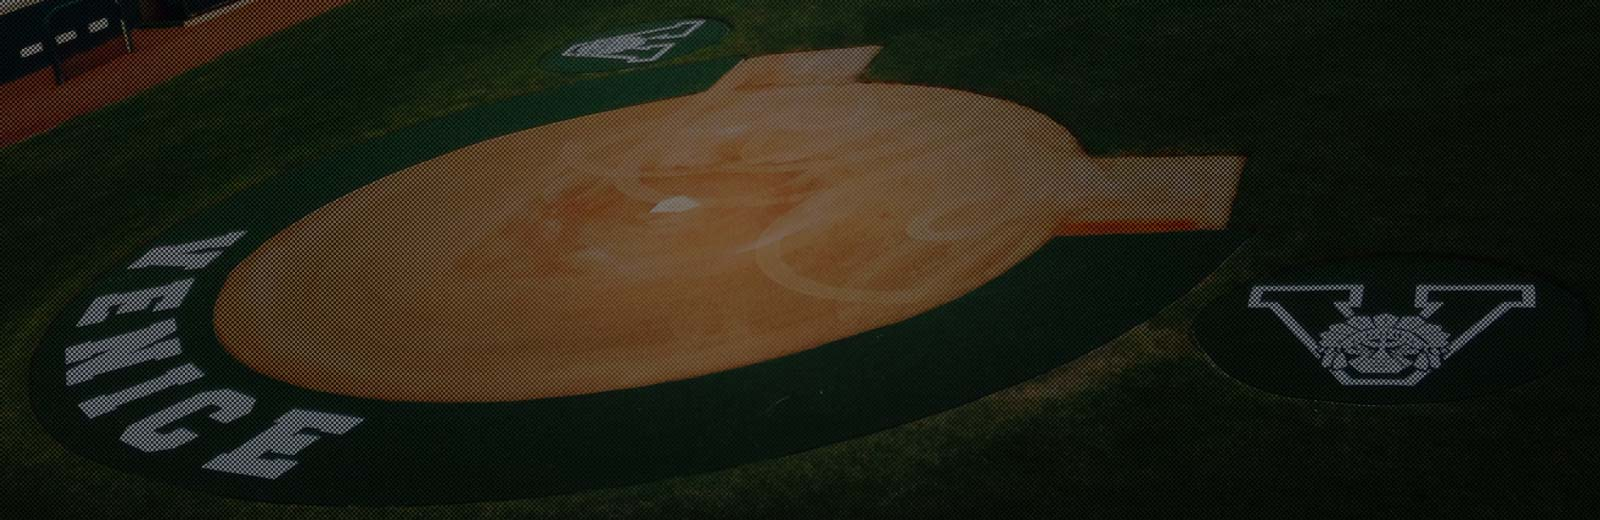 Home Plate Halos for Baseball & Softball Fields